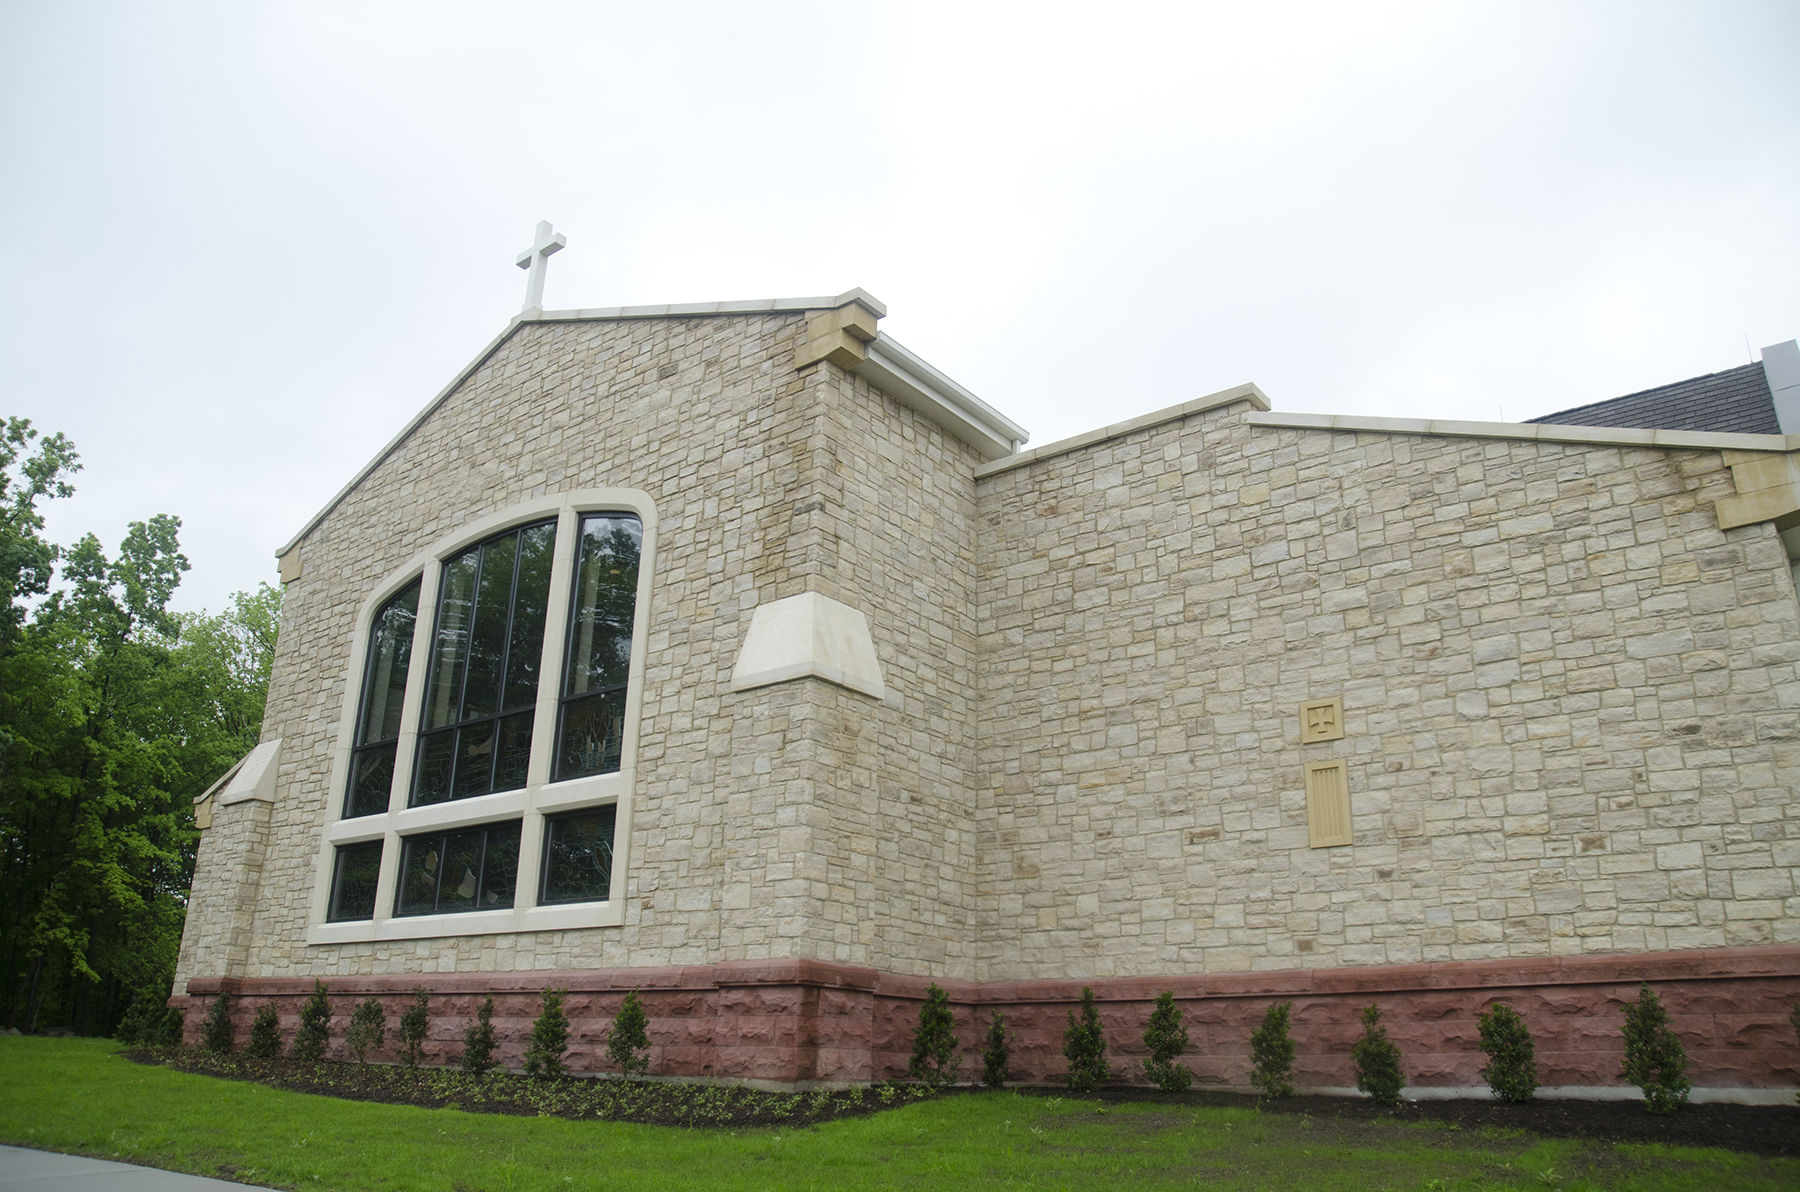 stone building with large window and cross